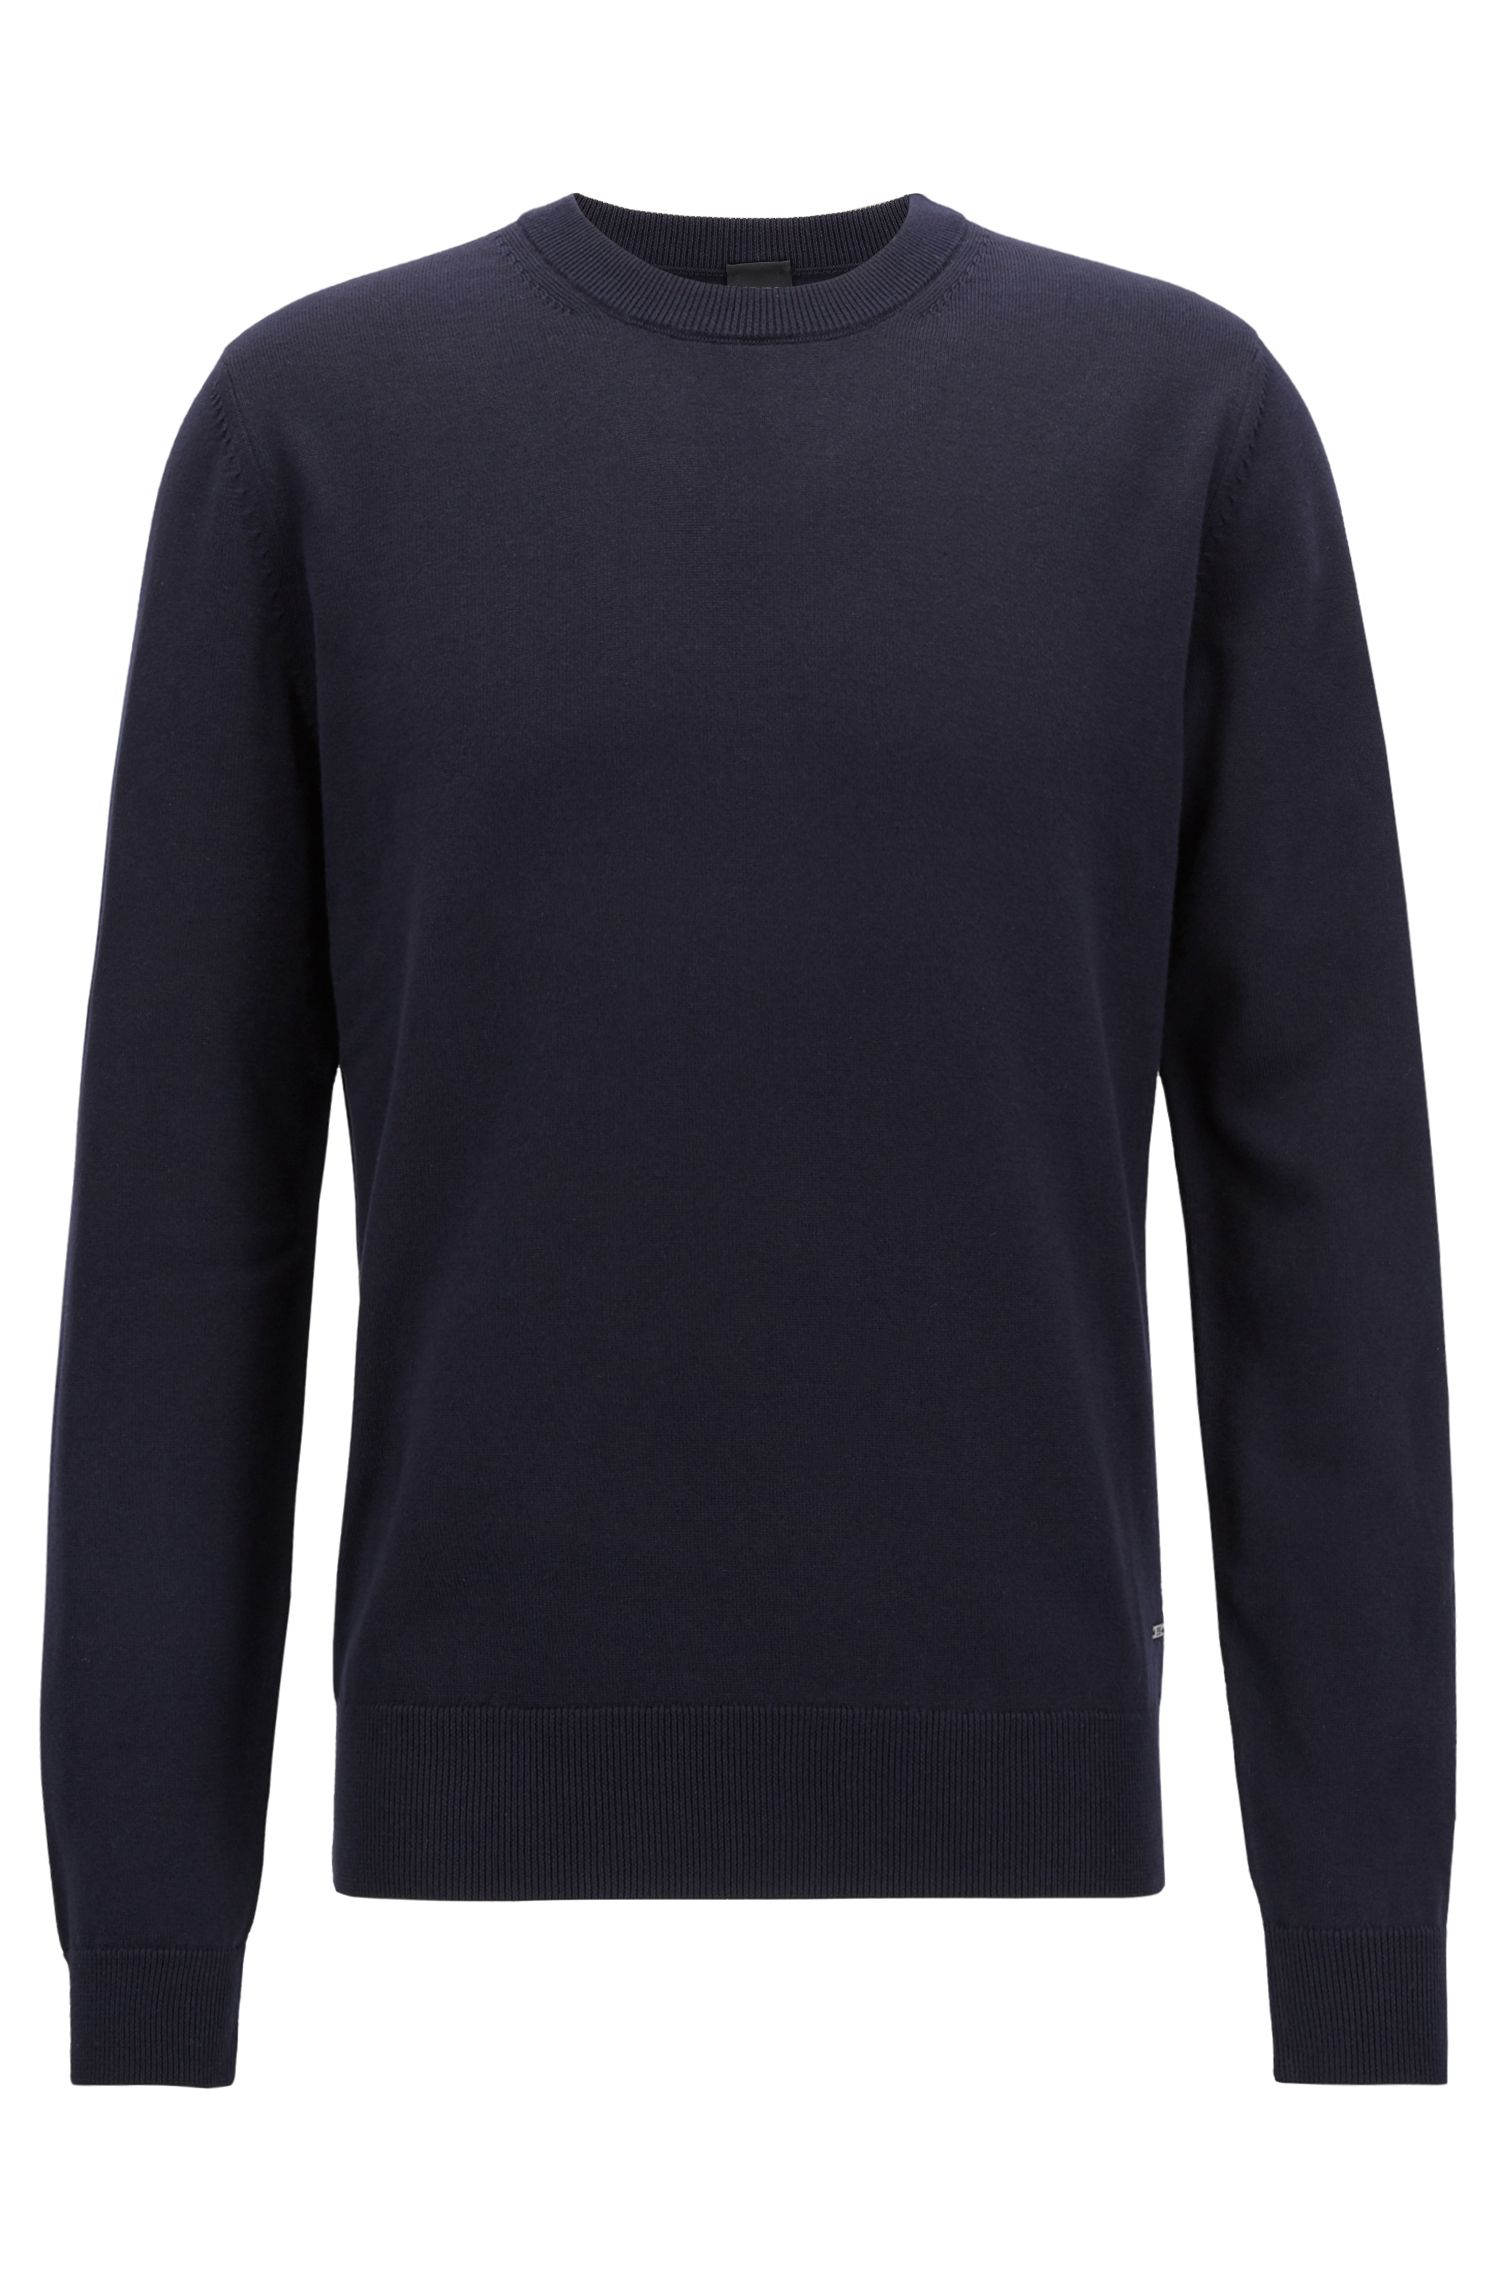 Crew-neck sweater in pure cotton, Dark Blue